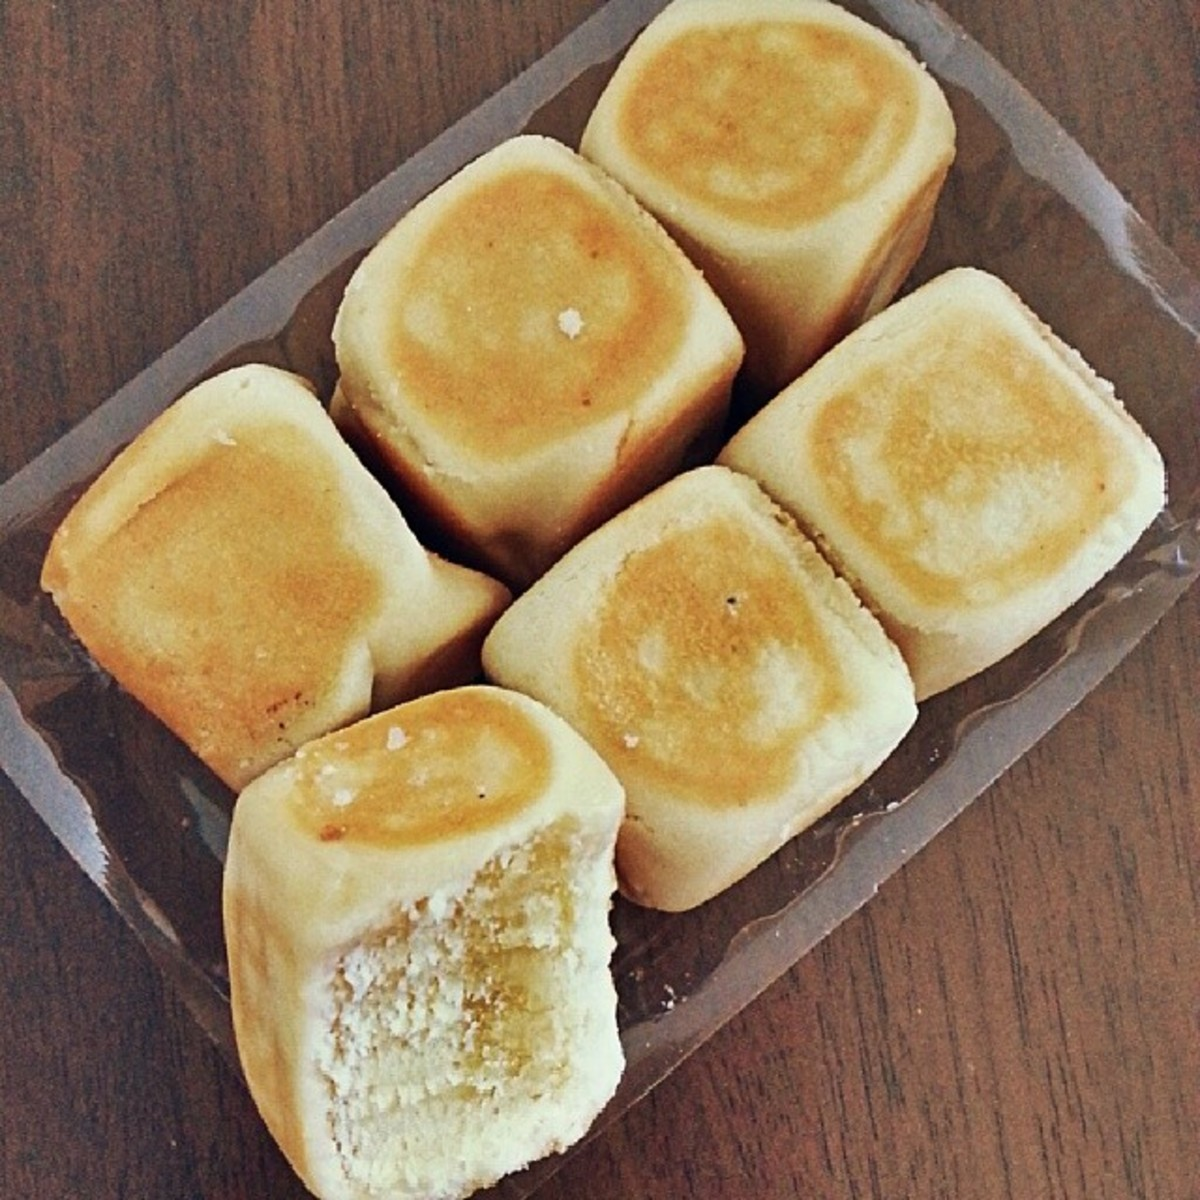 Dice-shaped hopia with mung bean paste filling.